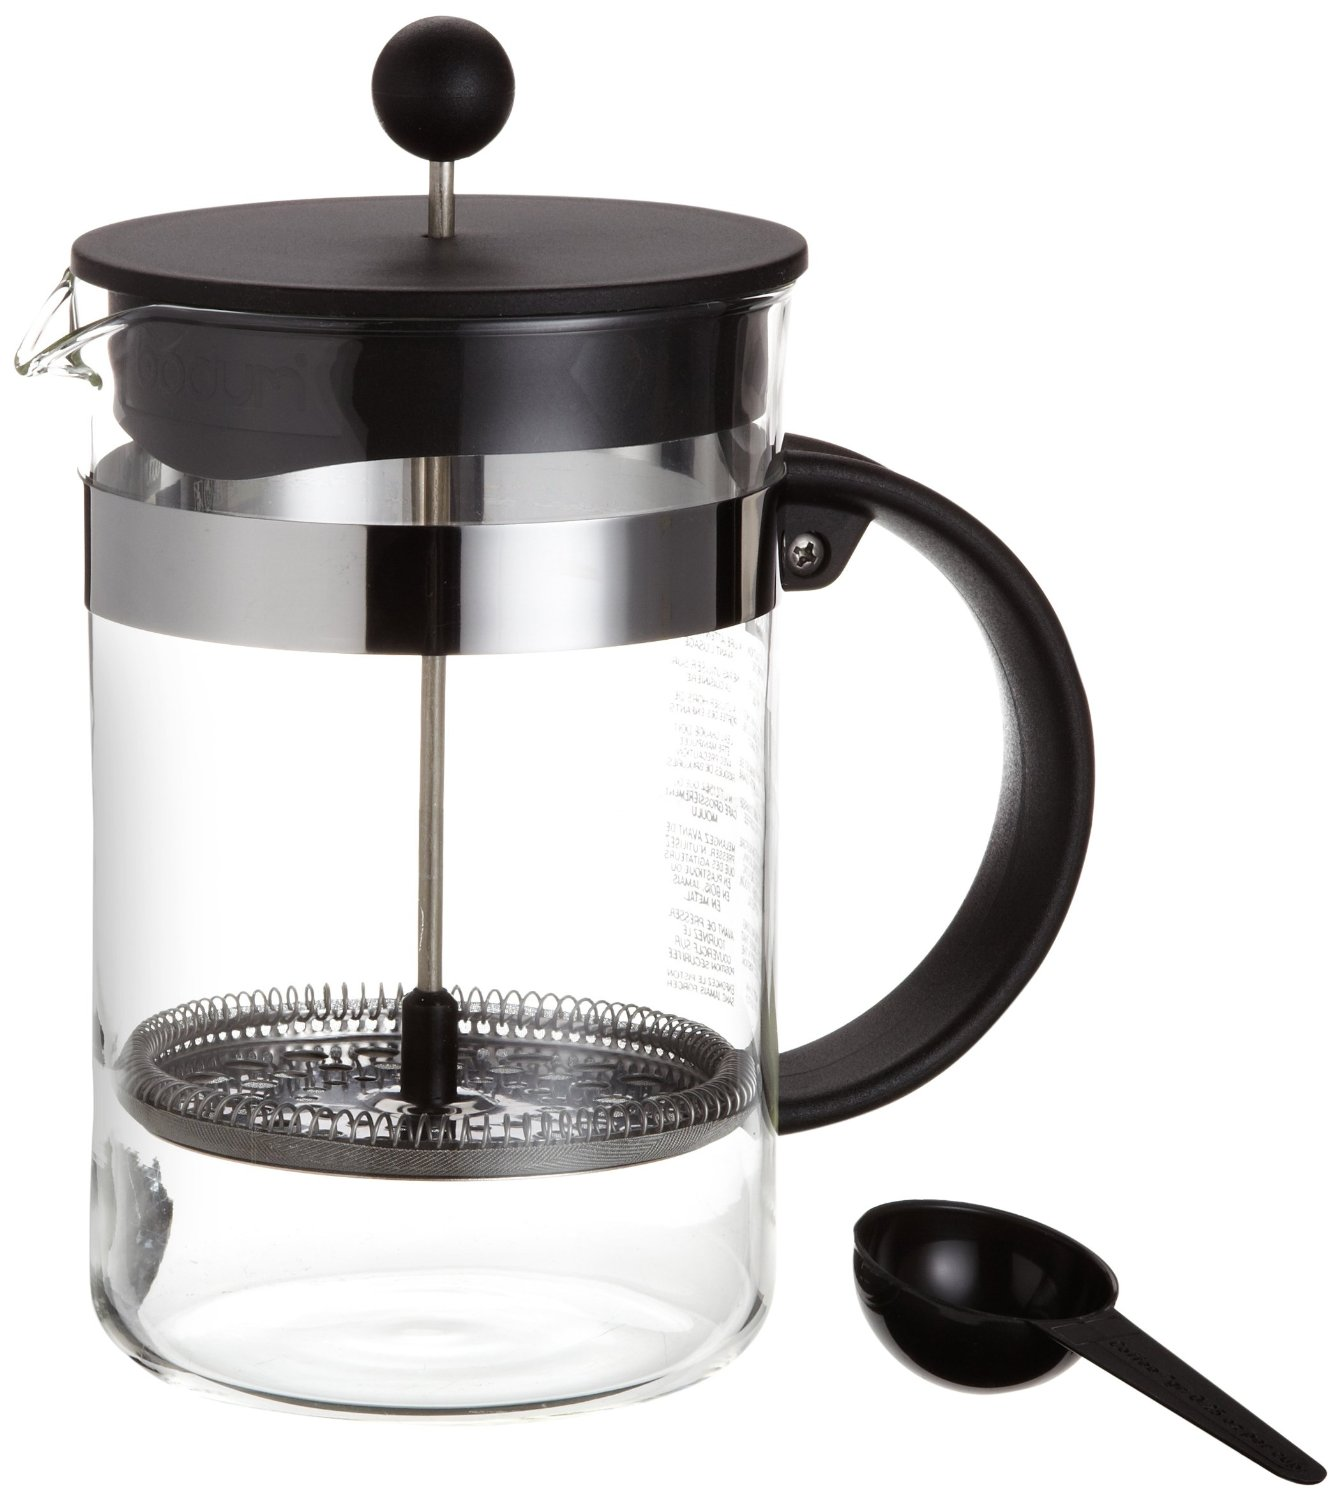 Bodum French Press Instructions Manual Cafe West Side Pane